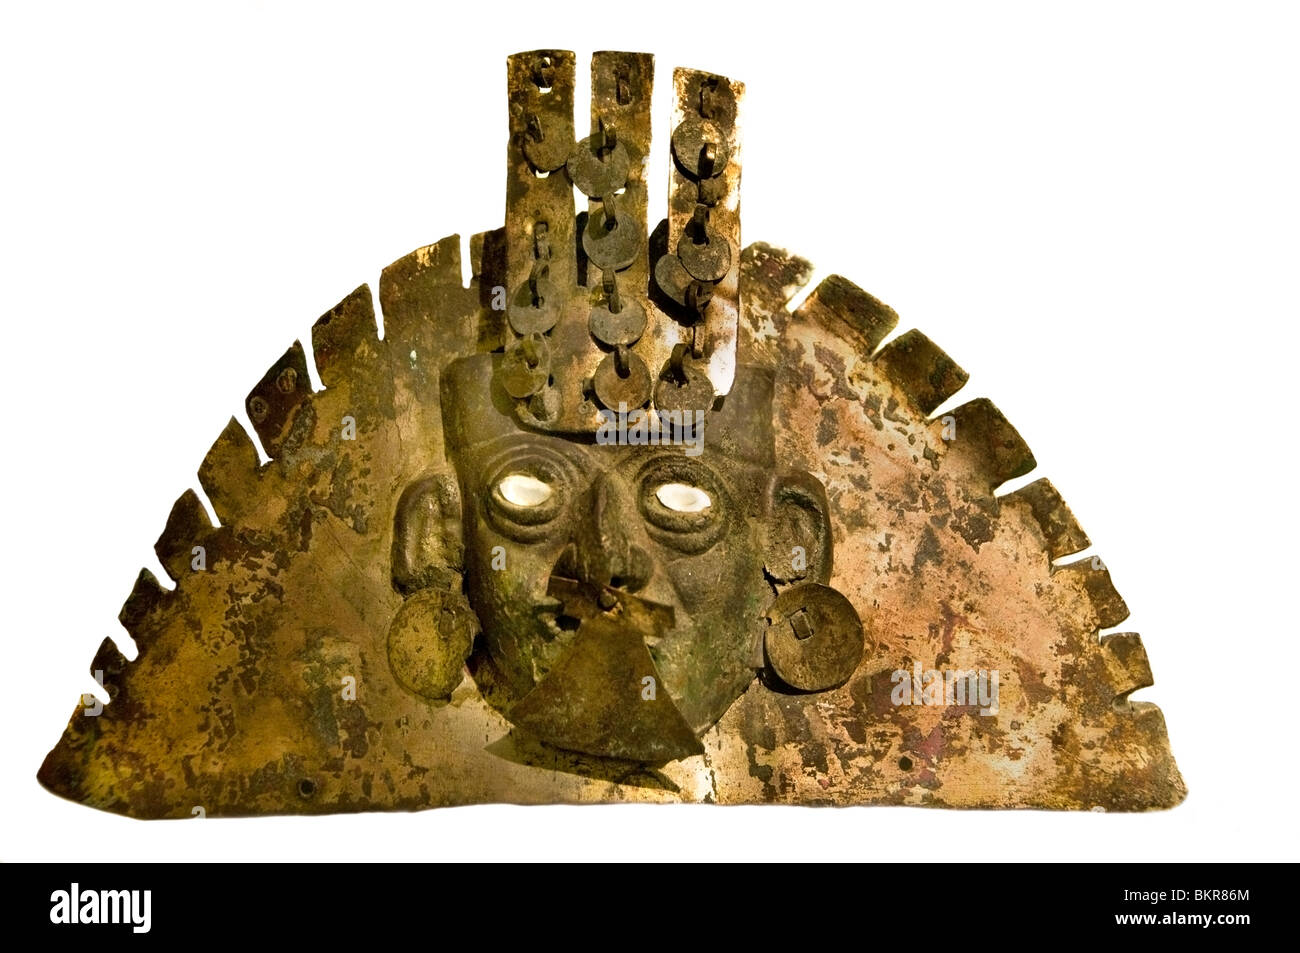 Mochica 100 BC 700 AD Peru Peruvian touched or pectoral - Stock Image